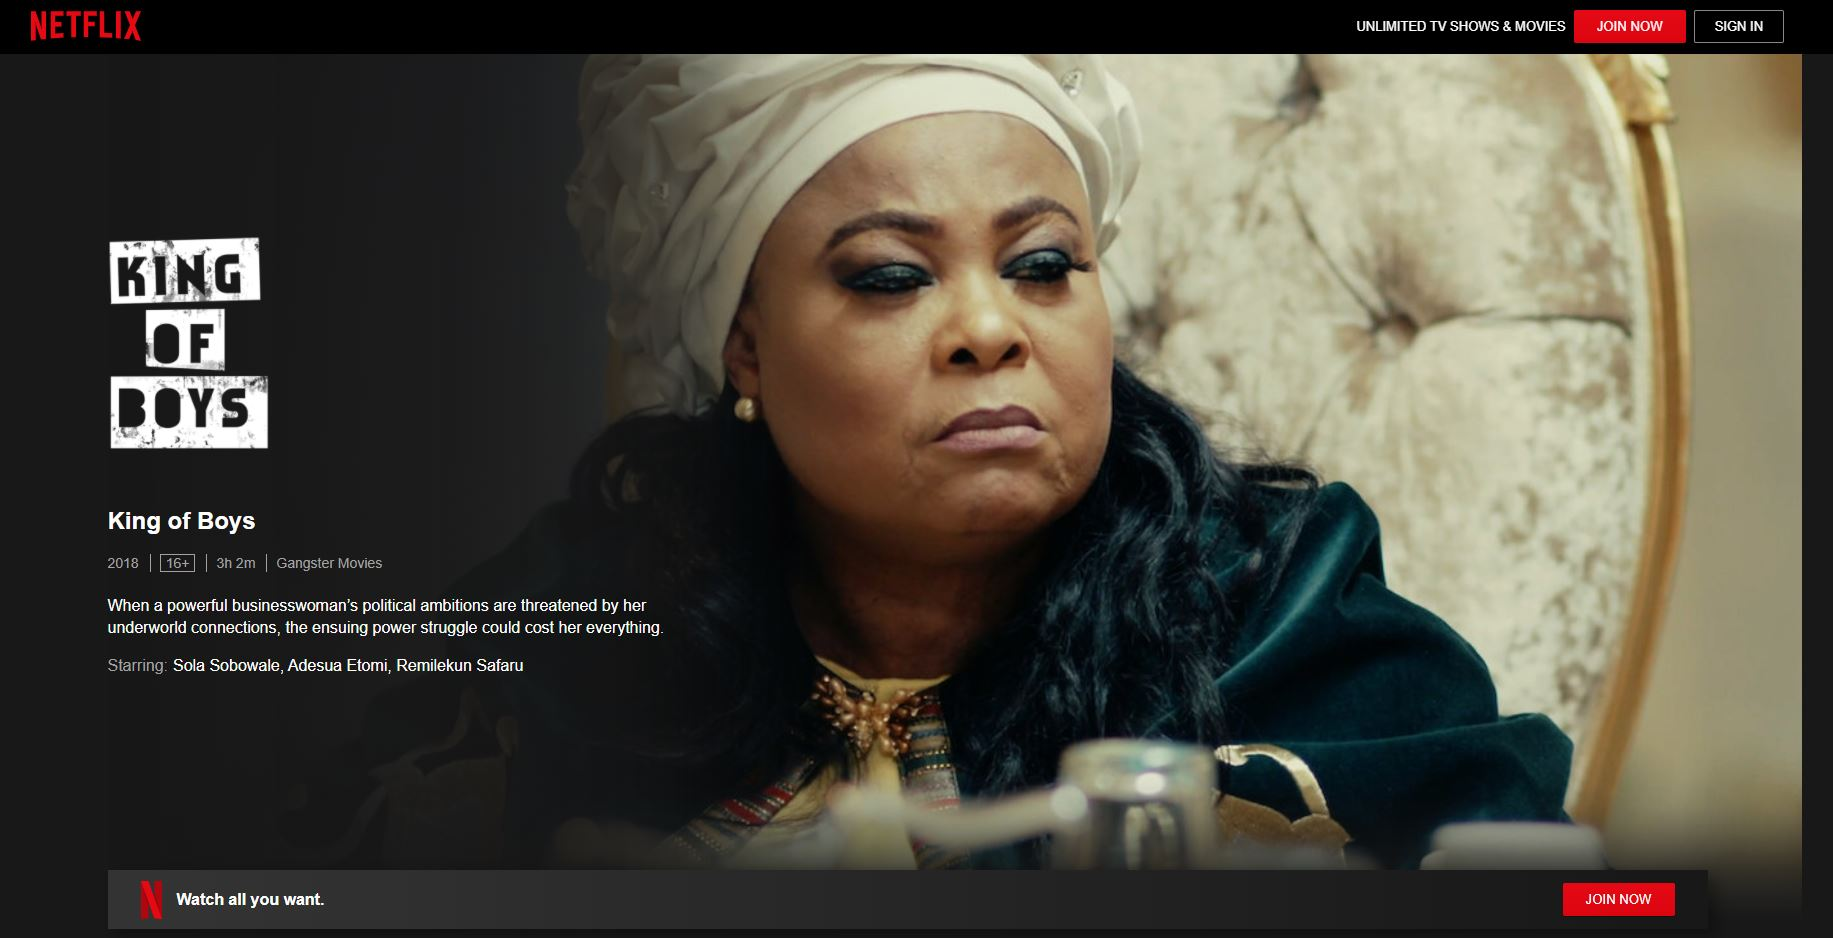 Nollywood Movies on Netflix - king of boys